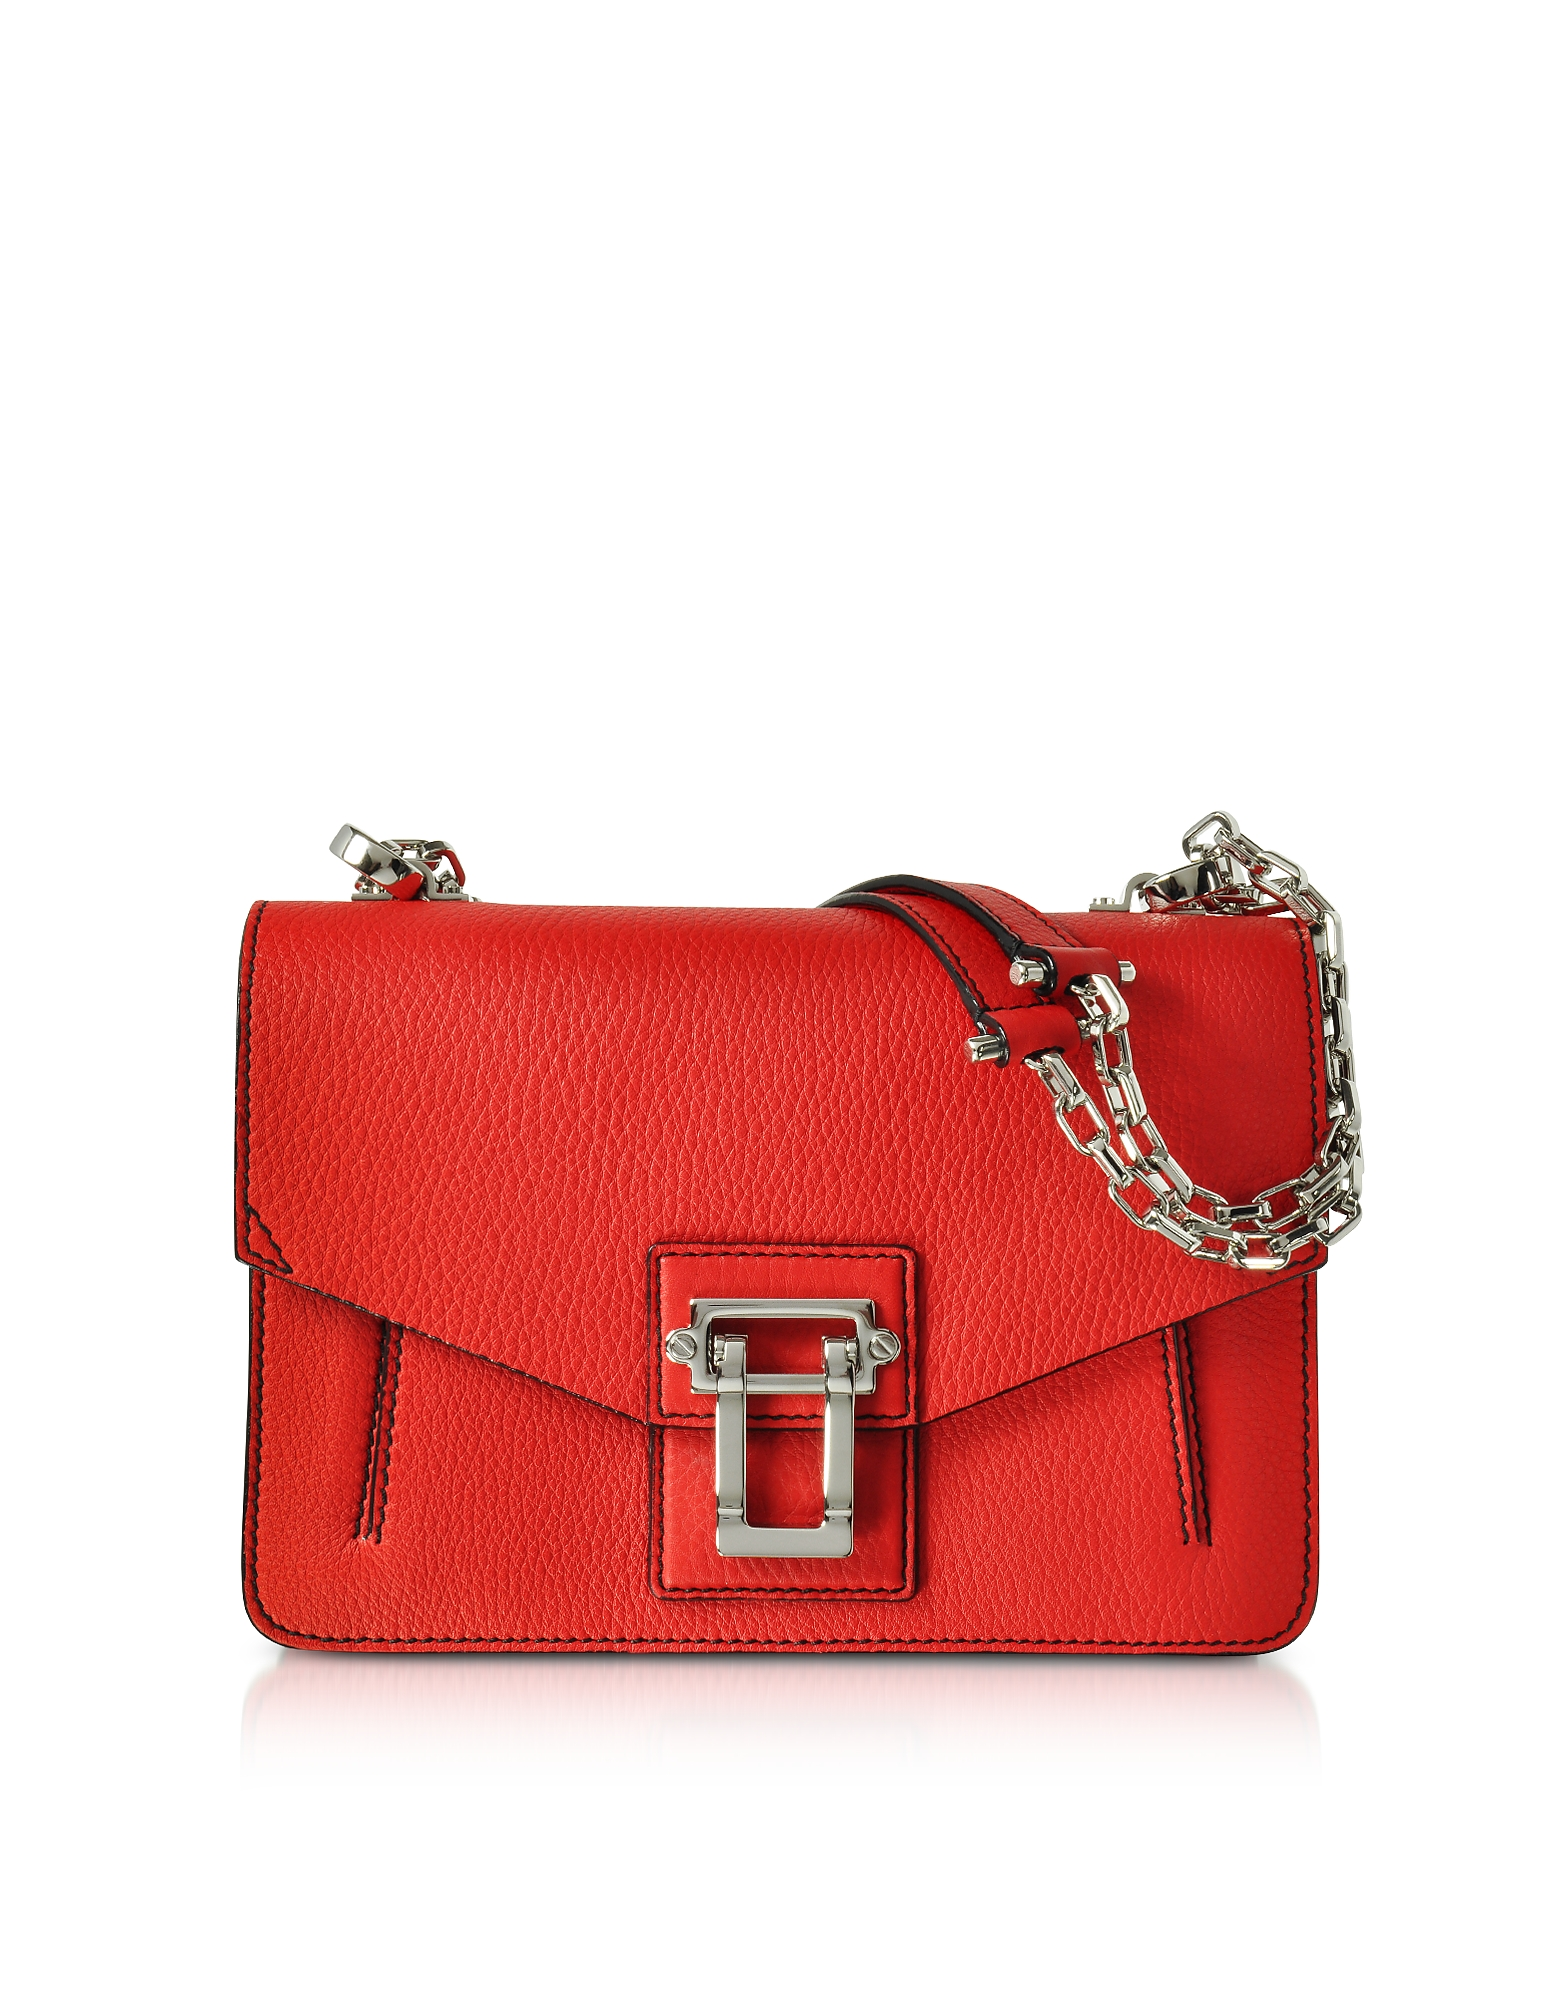 Proenza Schouler Handbags, Hava Chain Lindos Shoulder Bag